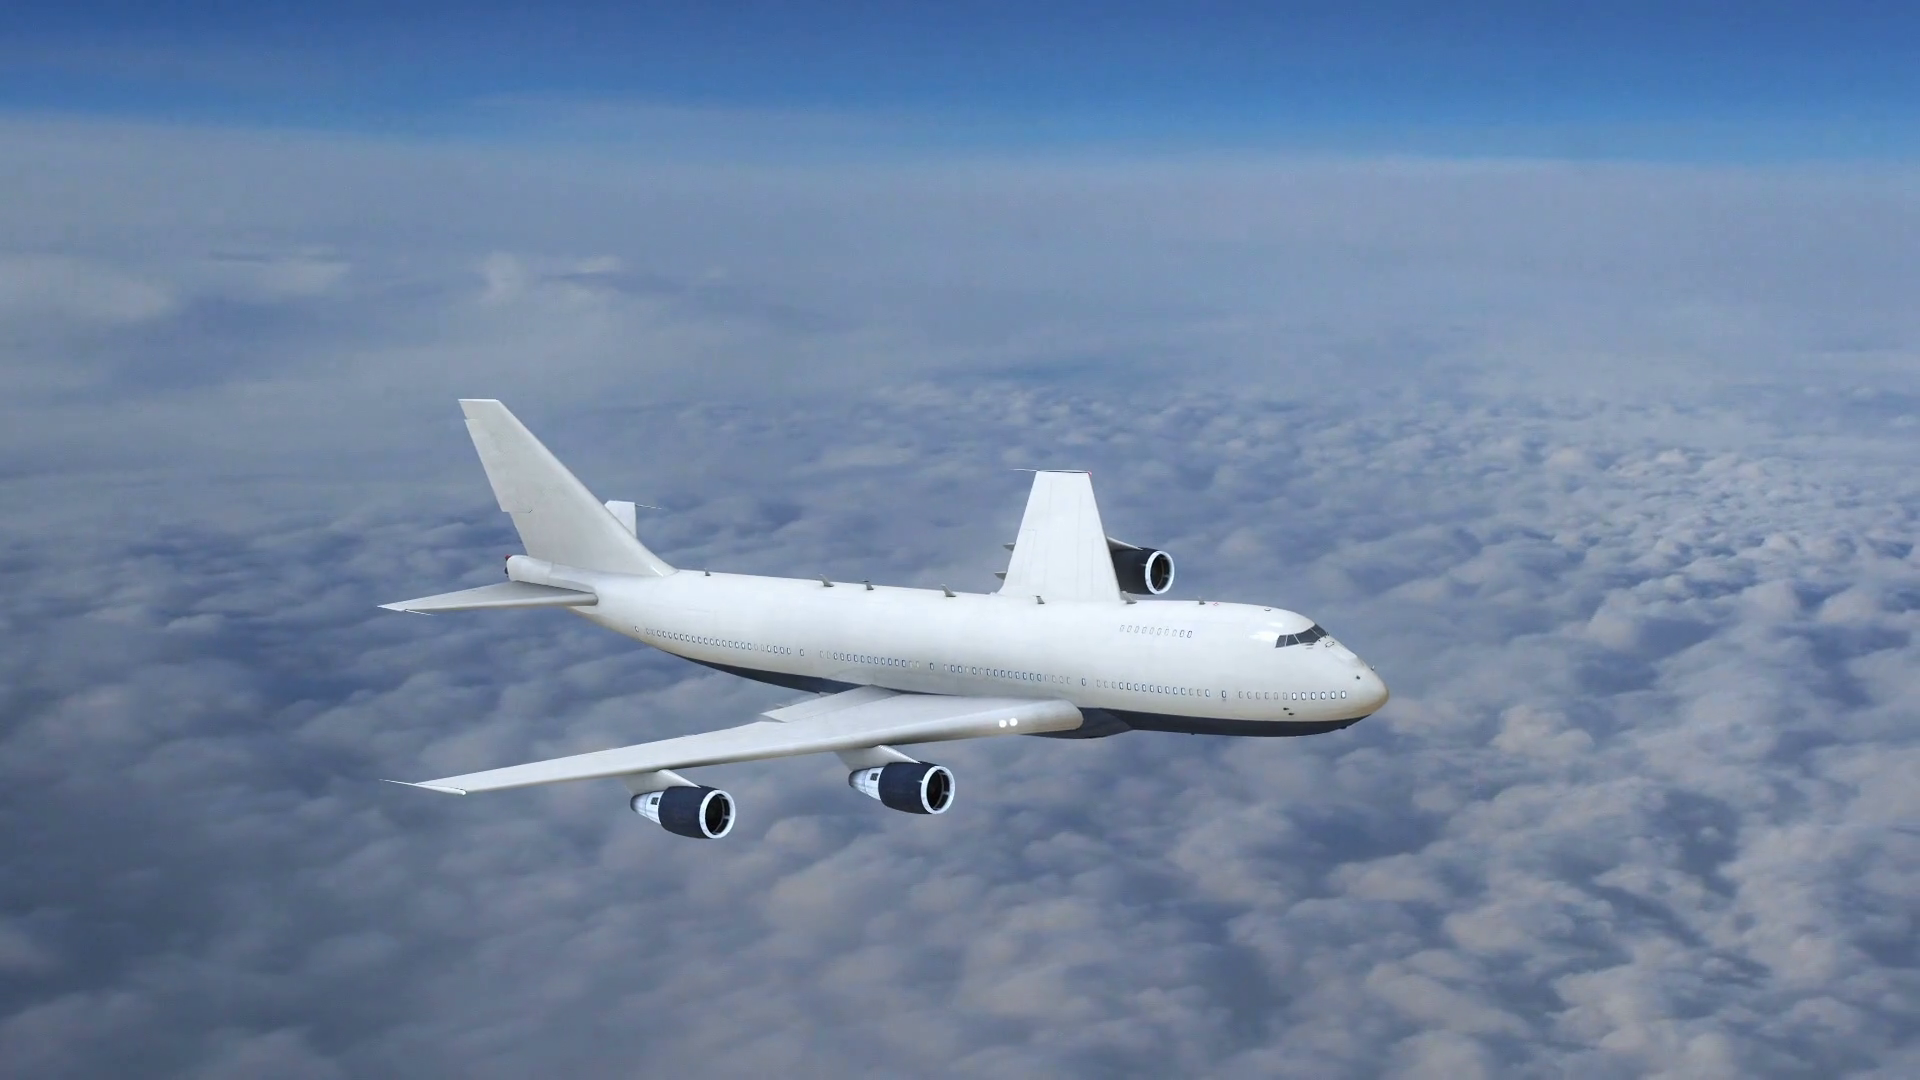 Plane Flying Above The Clouds, Commercial Airplane In Flight Motion ...